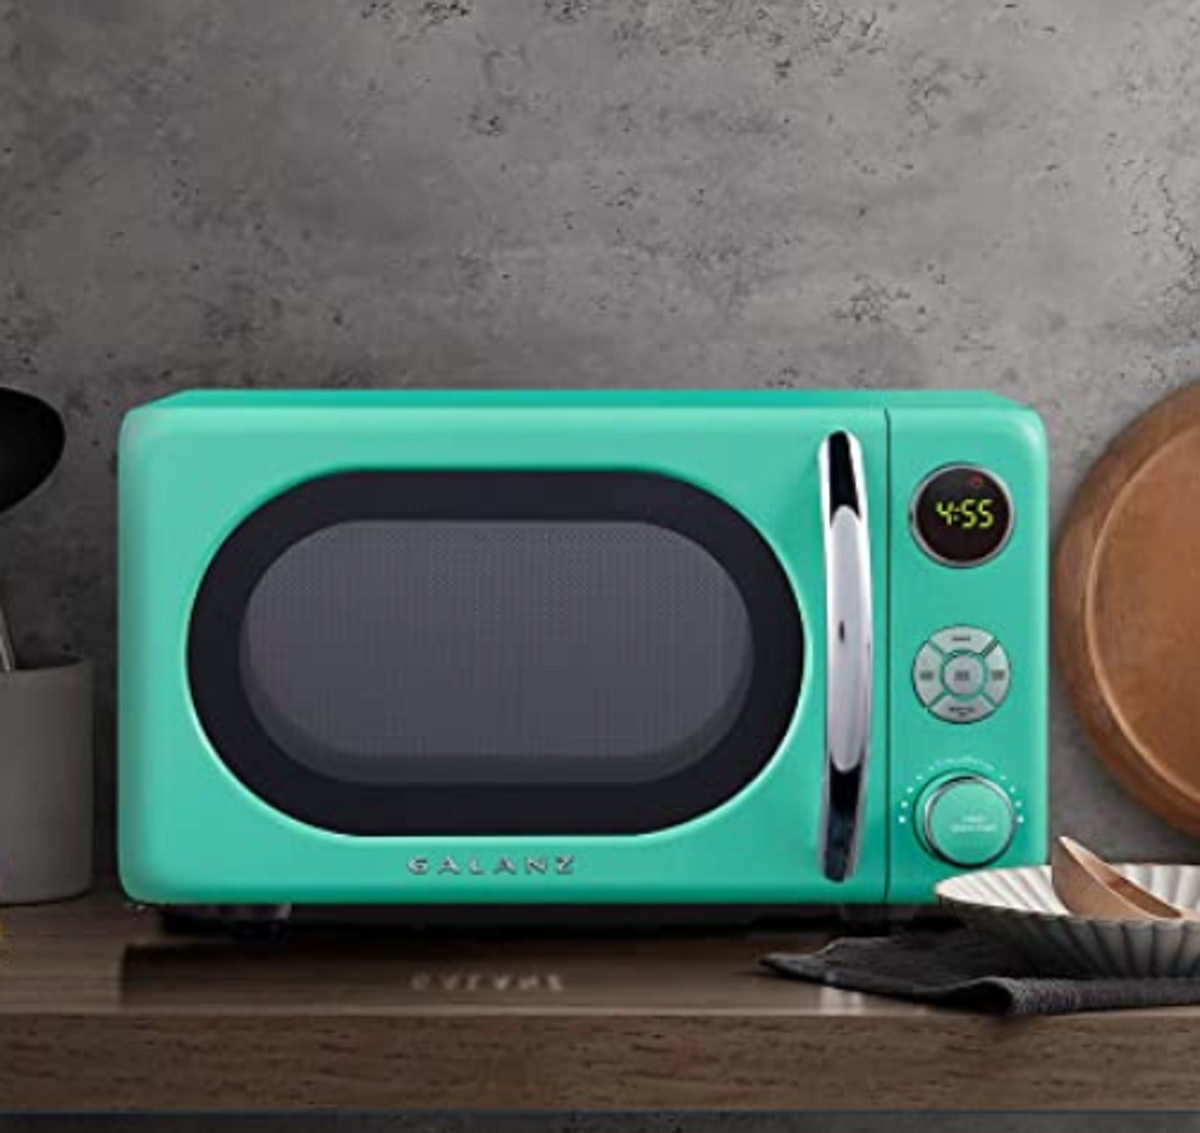 Galanz Microwave Oven